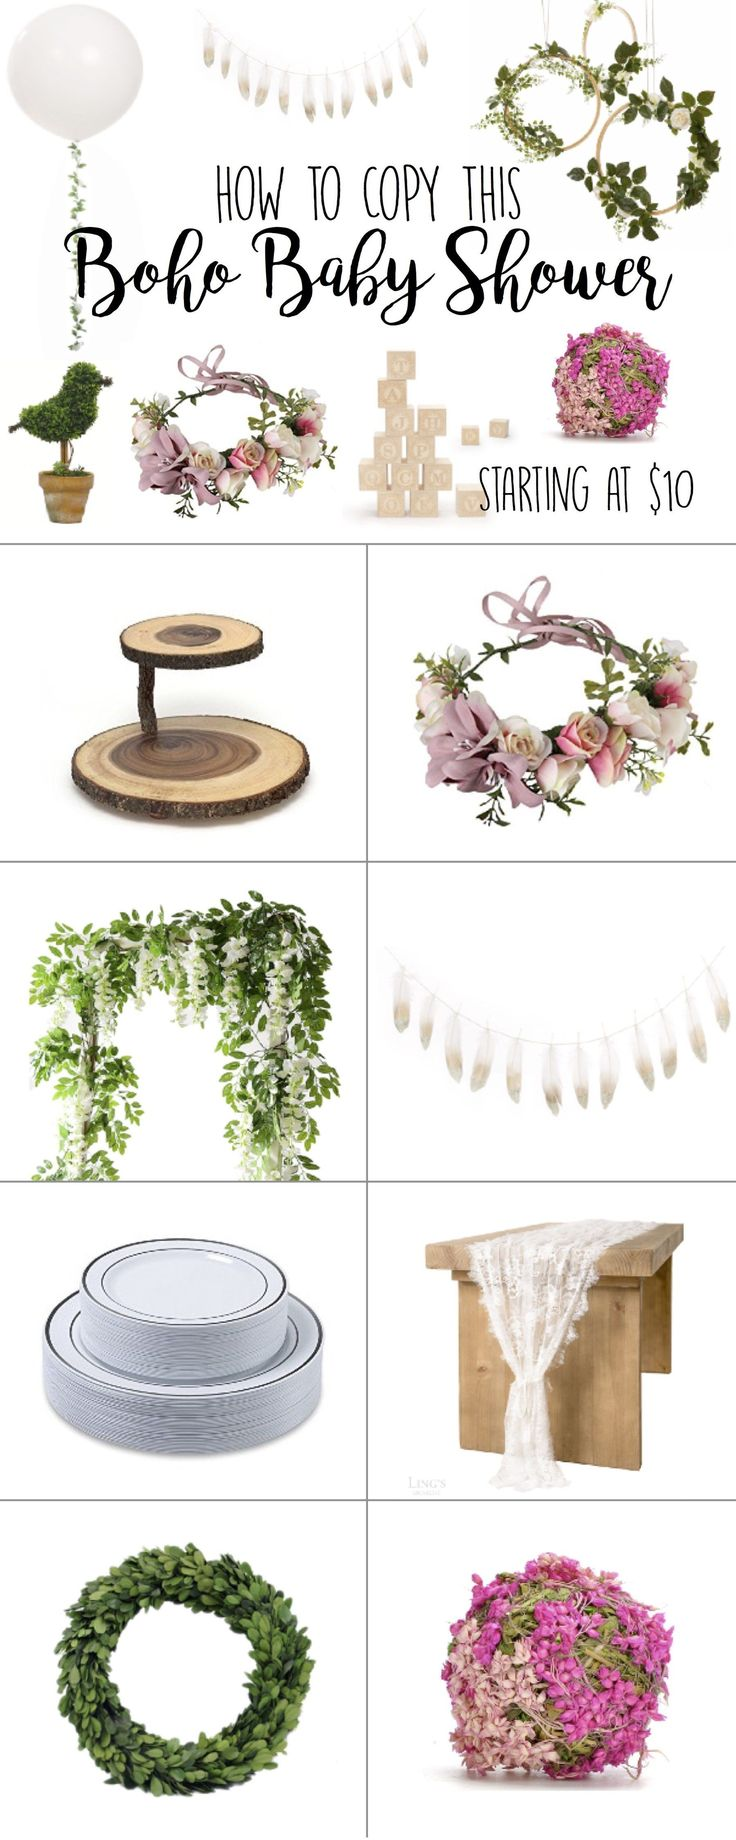 Boho Baby Shower Ideas, Girl, Boy, Bohemian, DIY, Theme, Decoration, Center Pieces, greenery, baby shower, shabby chic, dessert tables, dream catchers, Modern Florals, floral, rustic, modern, elegant, food, woodsy, outdoor, gender neutral baby shower ideas, pink fall, mom, feathers, classic, classy, elegant, pretty baby shower, classy shower for baby girl boy #boho #bohobabyshower #babyshowerideas #babyshower #bohemianshower #shabbychicbabyshower #babyshowerdecorations